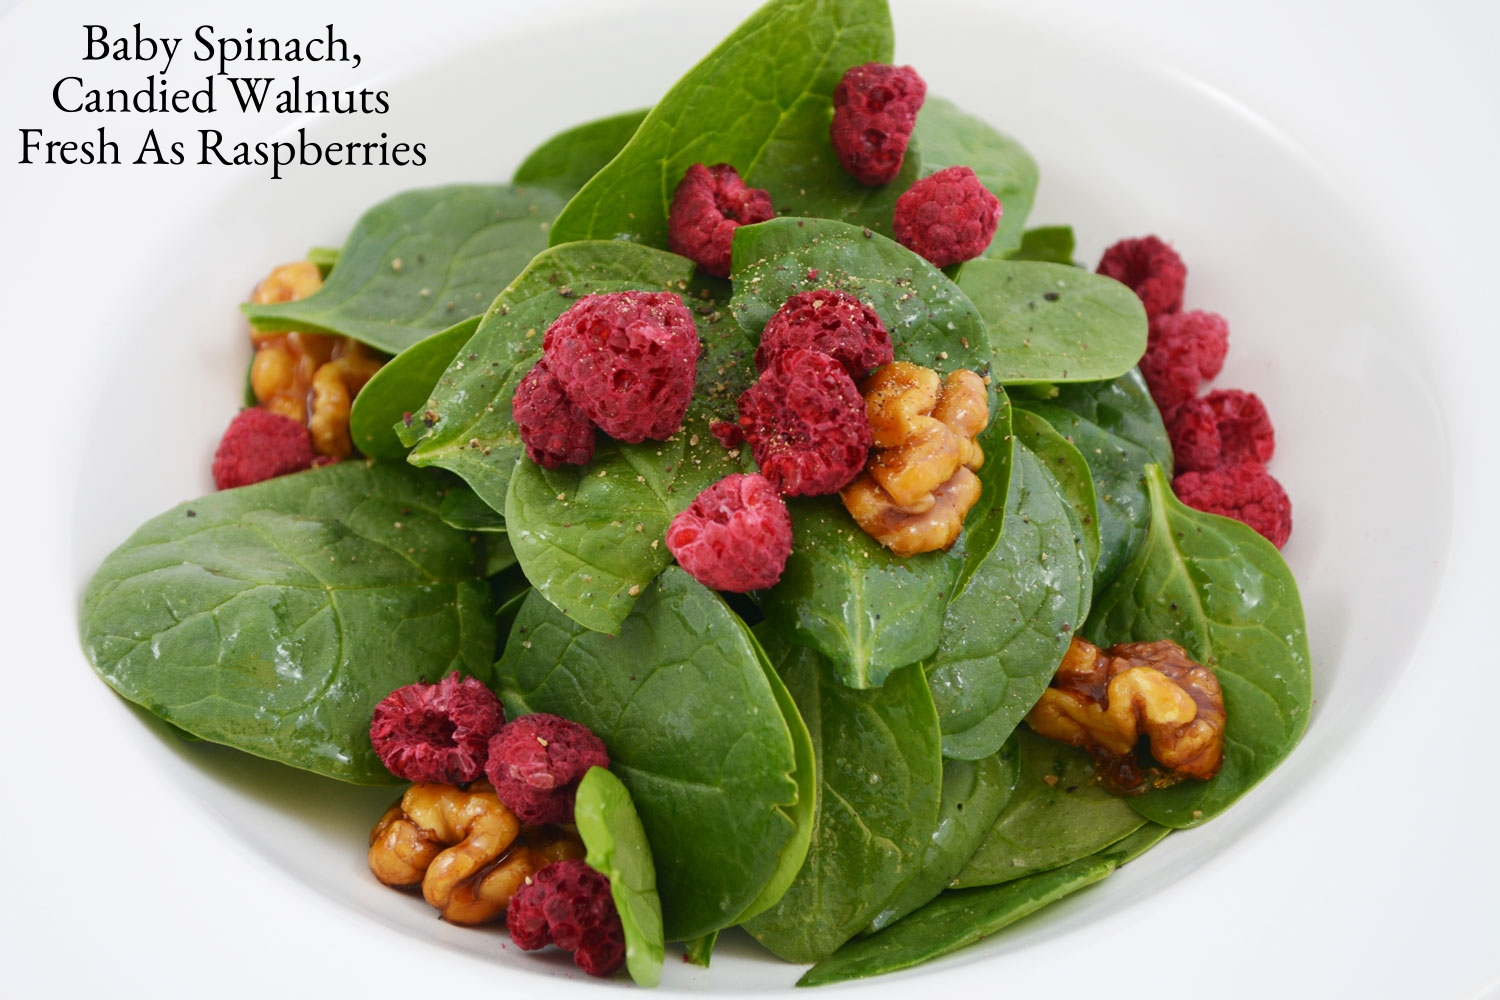 BAY-SPINACH-SALAD-TOSSED-WITH-WALNUT-OIL,-FRESH-AS-RASPBERRIES-AND-CANDIED-WALNUTS.jpg